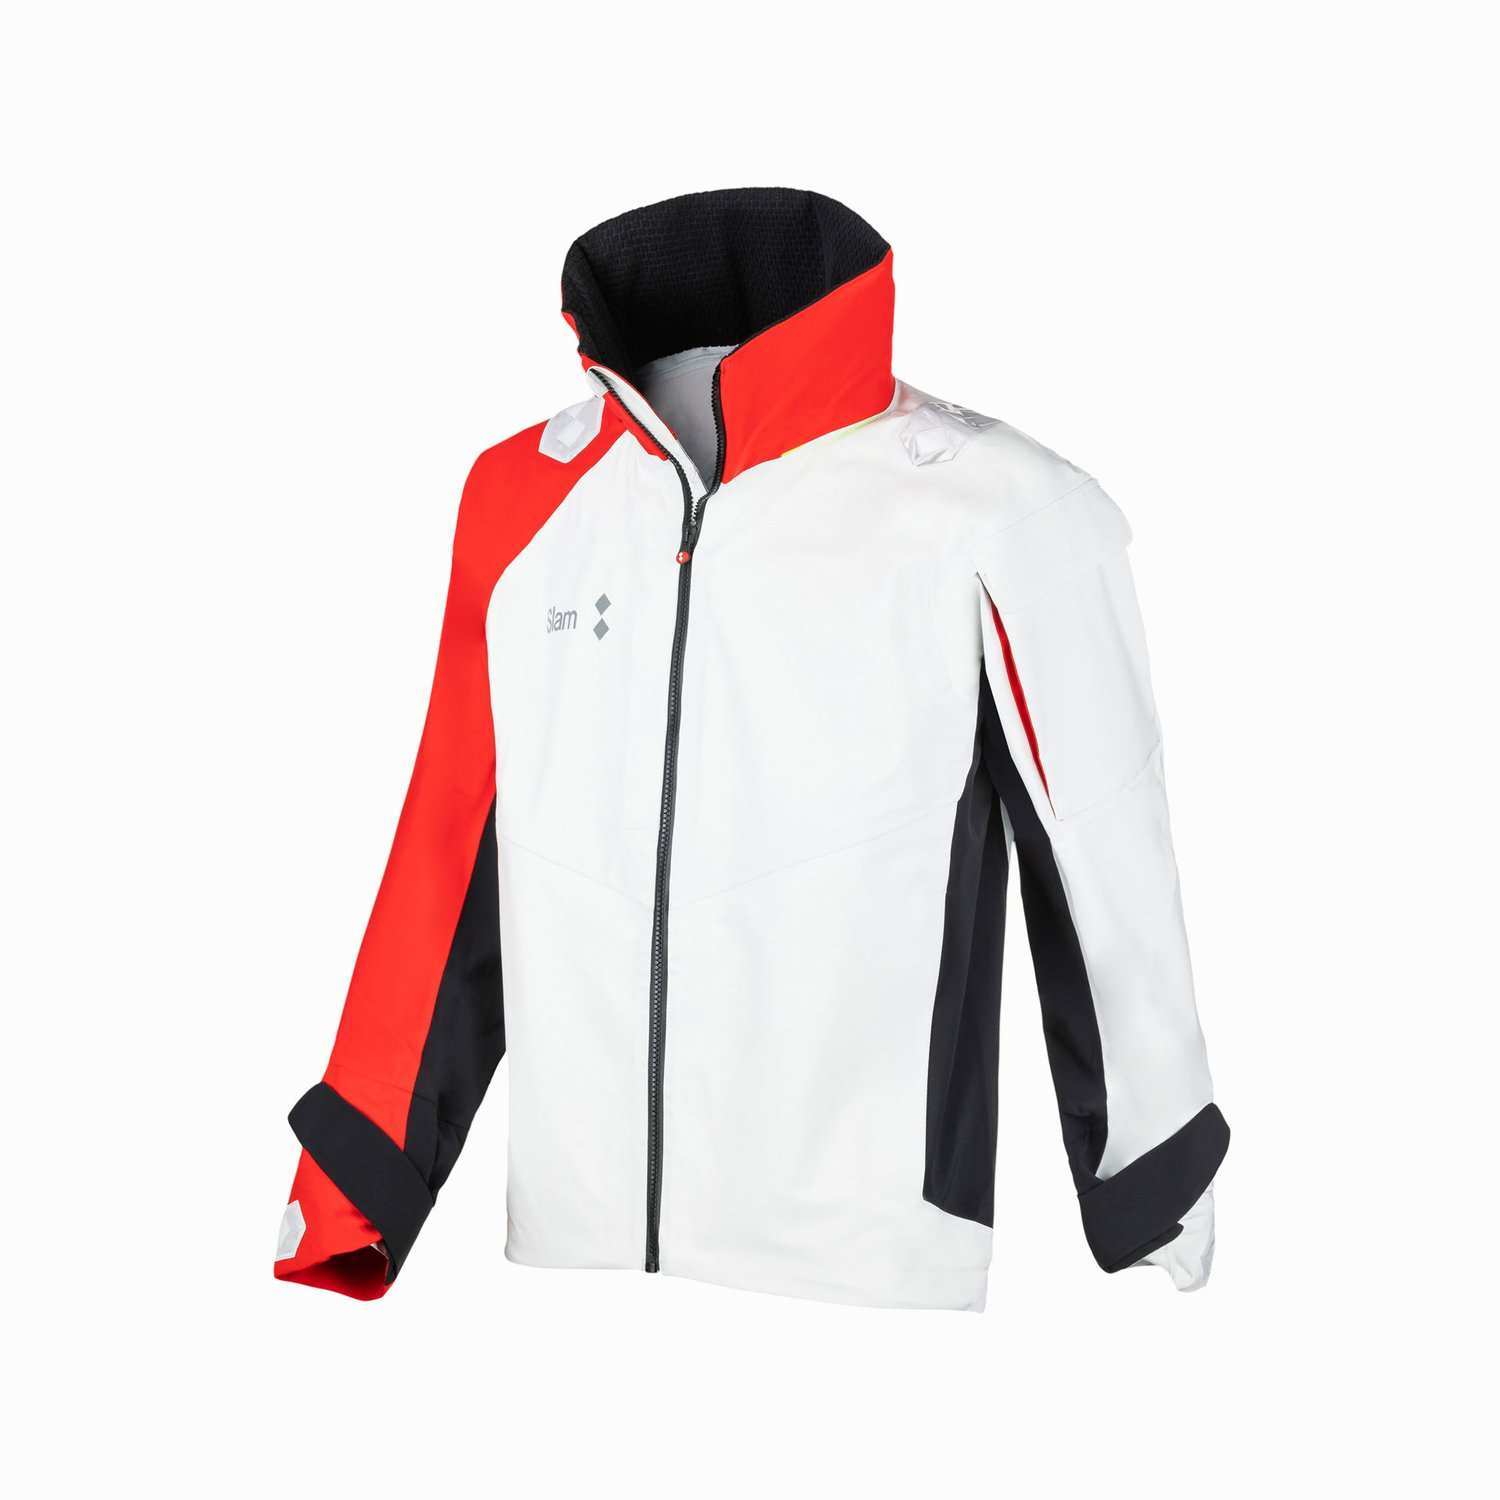 WIN-D RACING JACKET - White/Slam Red/Black